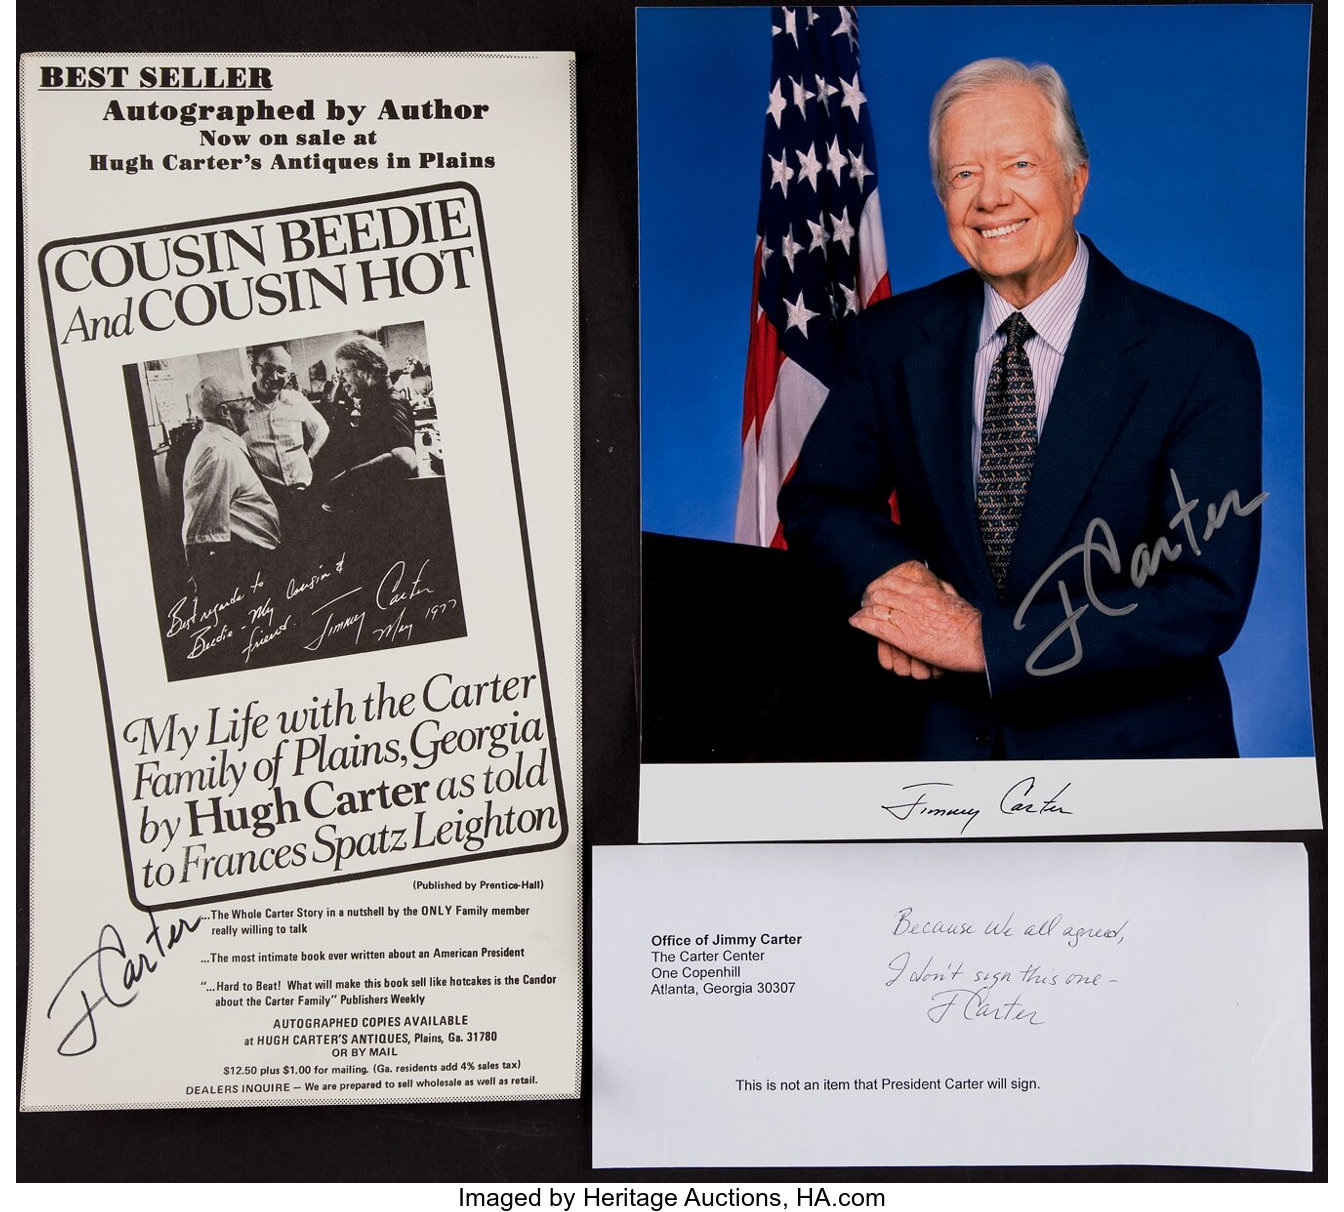 Jimmy Carter Trio of Signed Item - Photo, Book Signing Ad